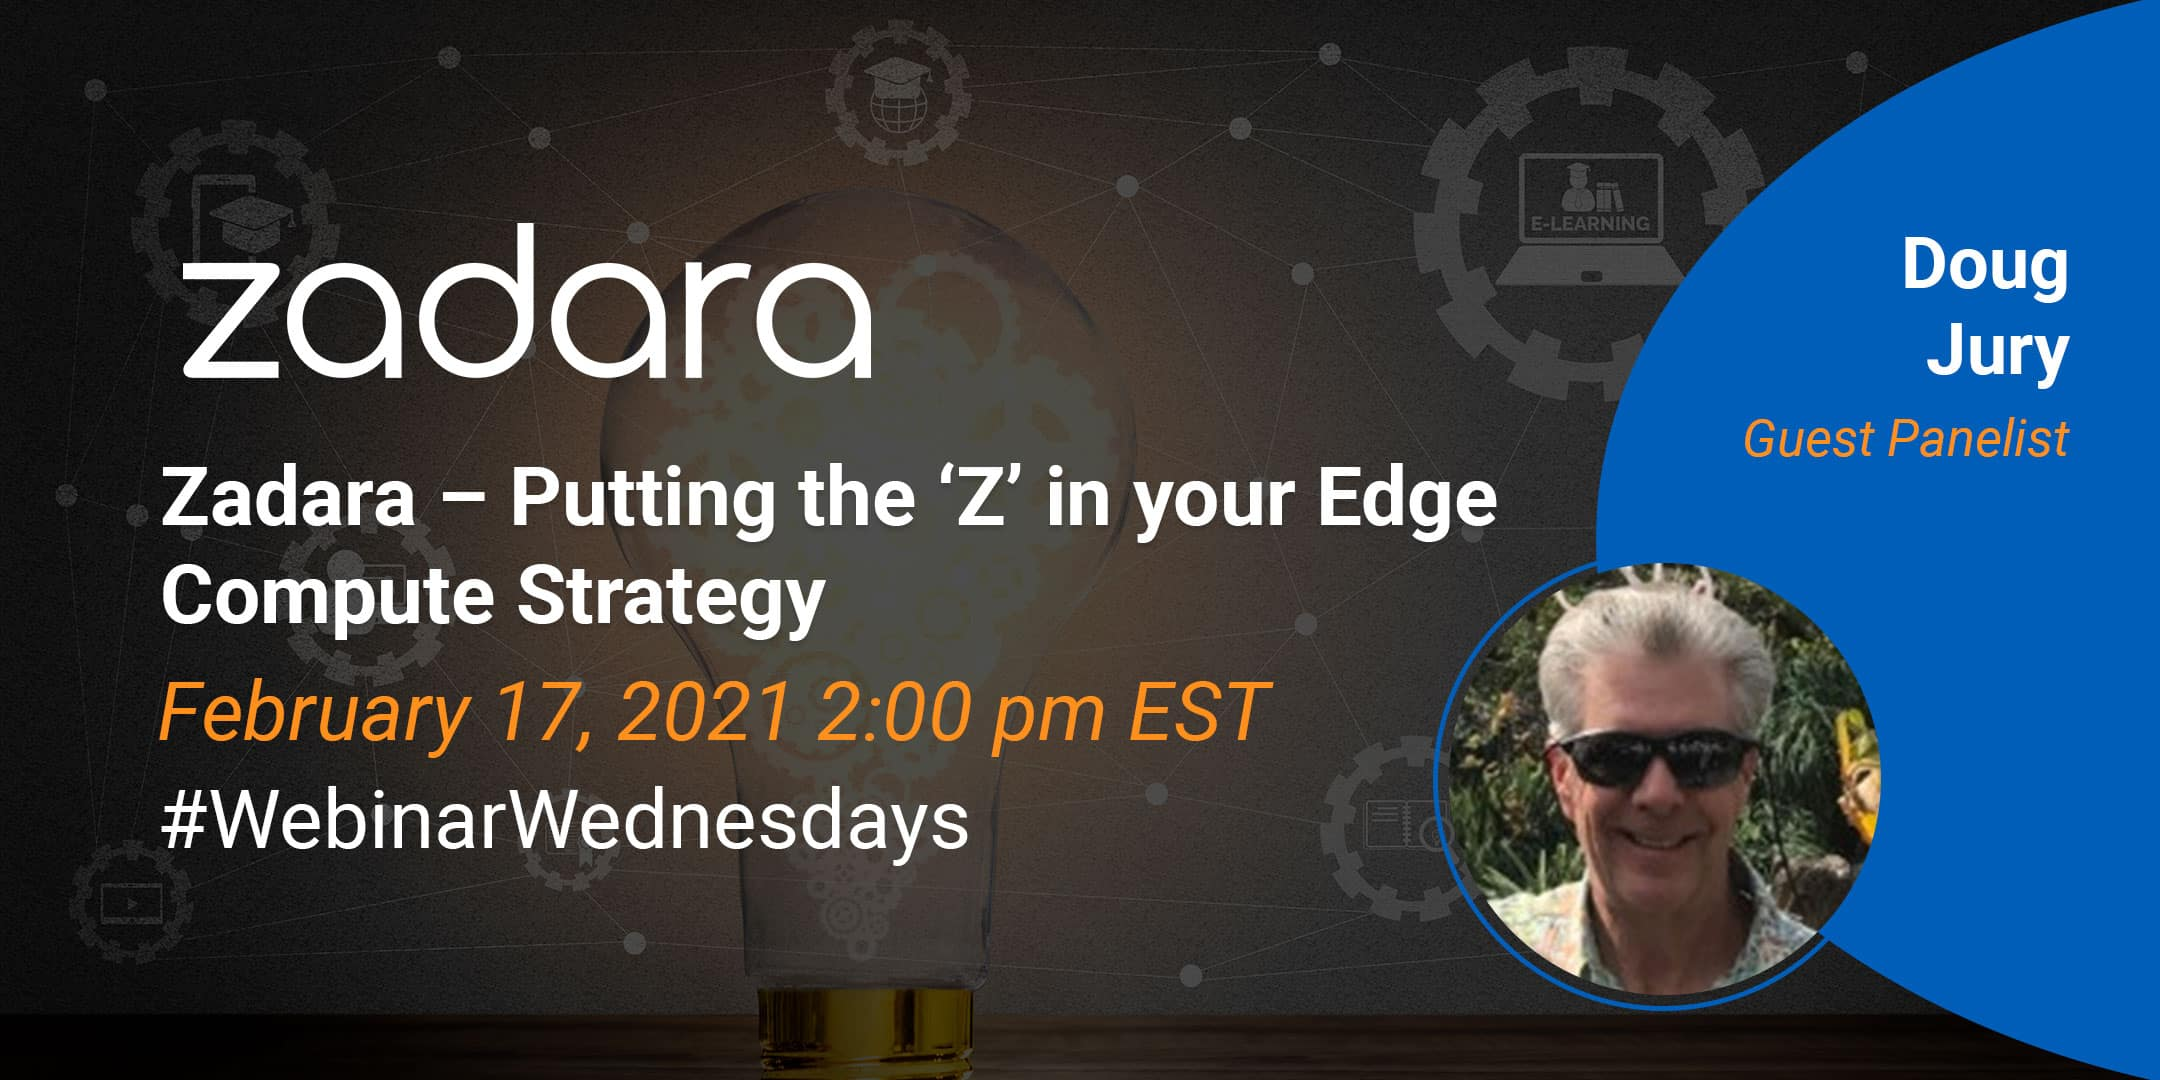 Zadara – Putting the 'Z' in your Edge Compute Strategy